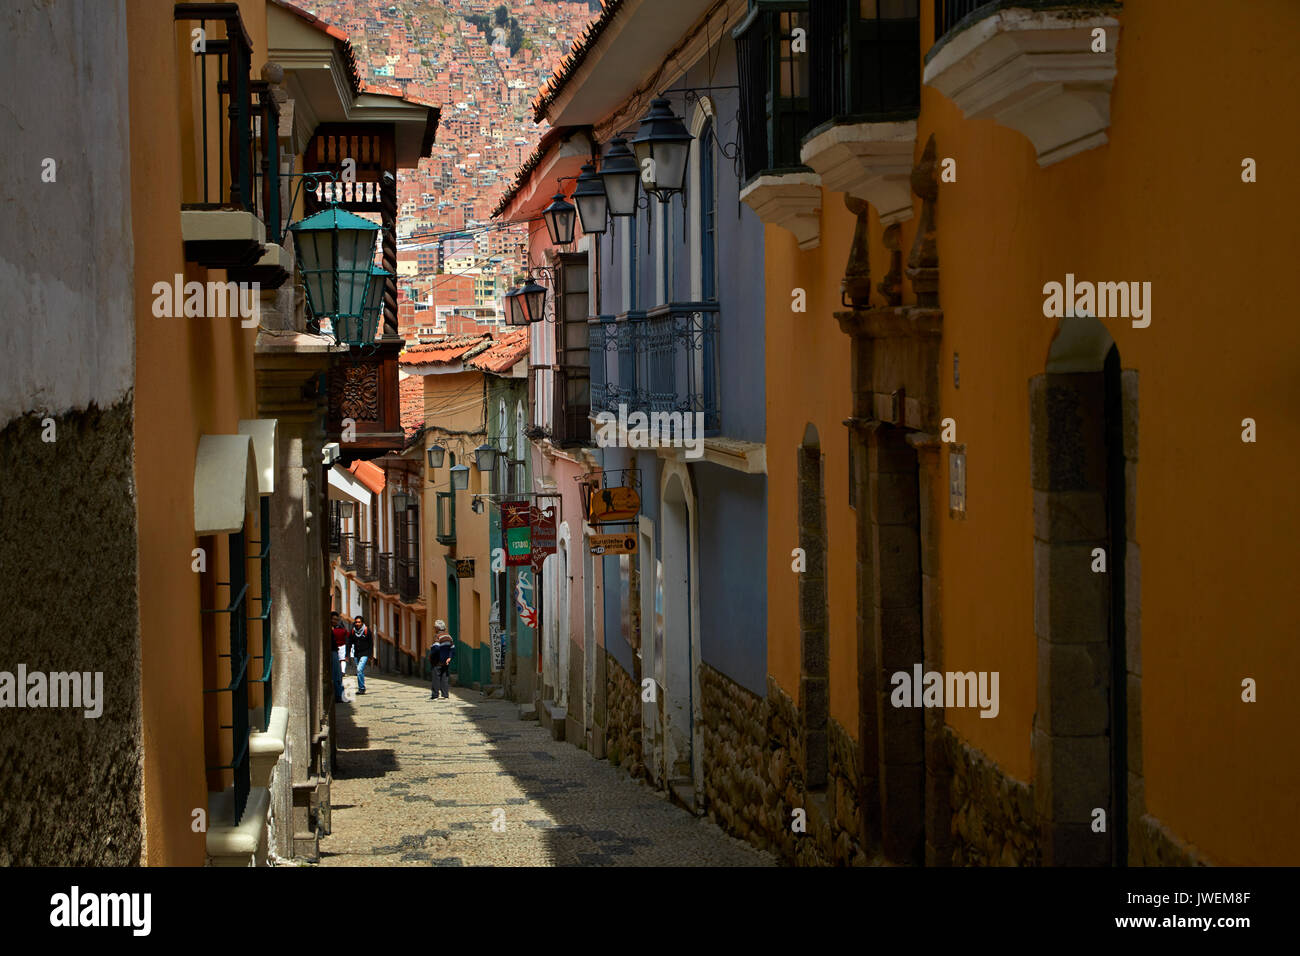 Narrow steep cobbled street of Calle Jaen, La Paz, Bolivia, South America Stock Photo